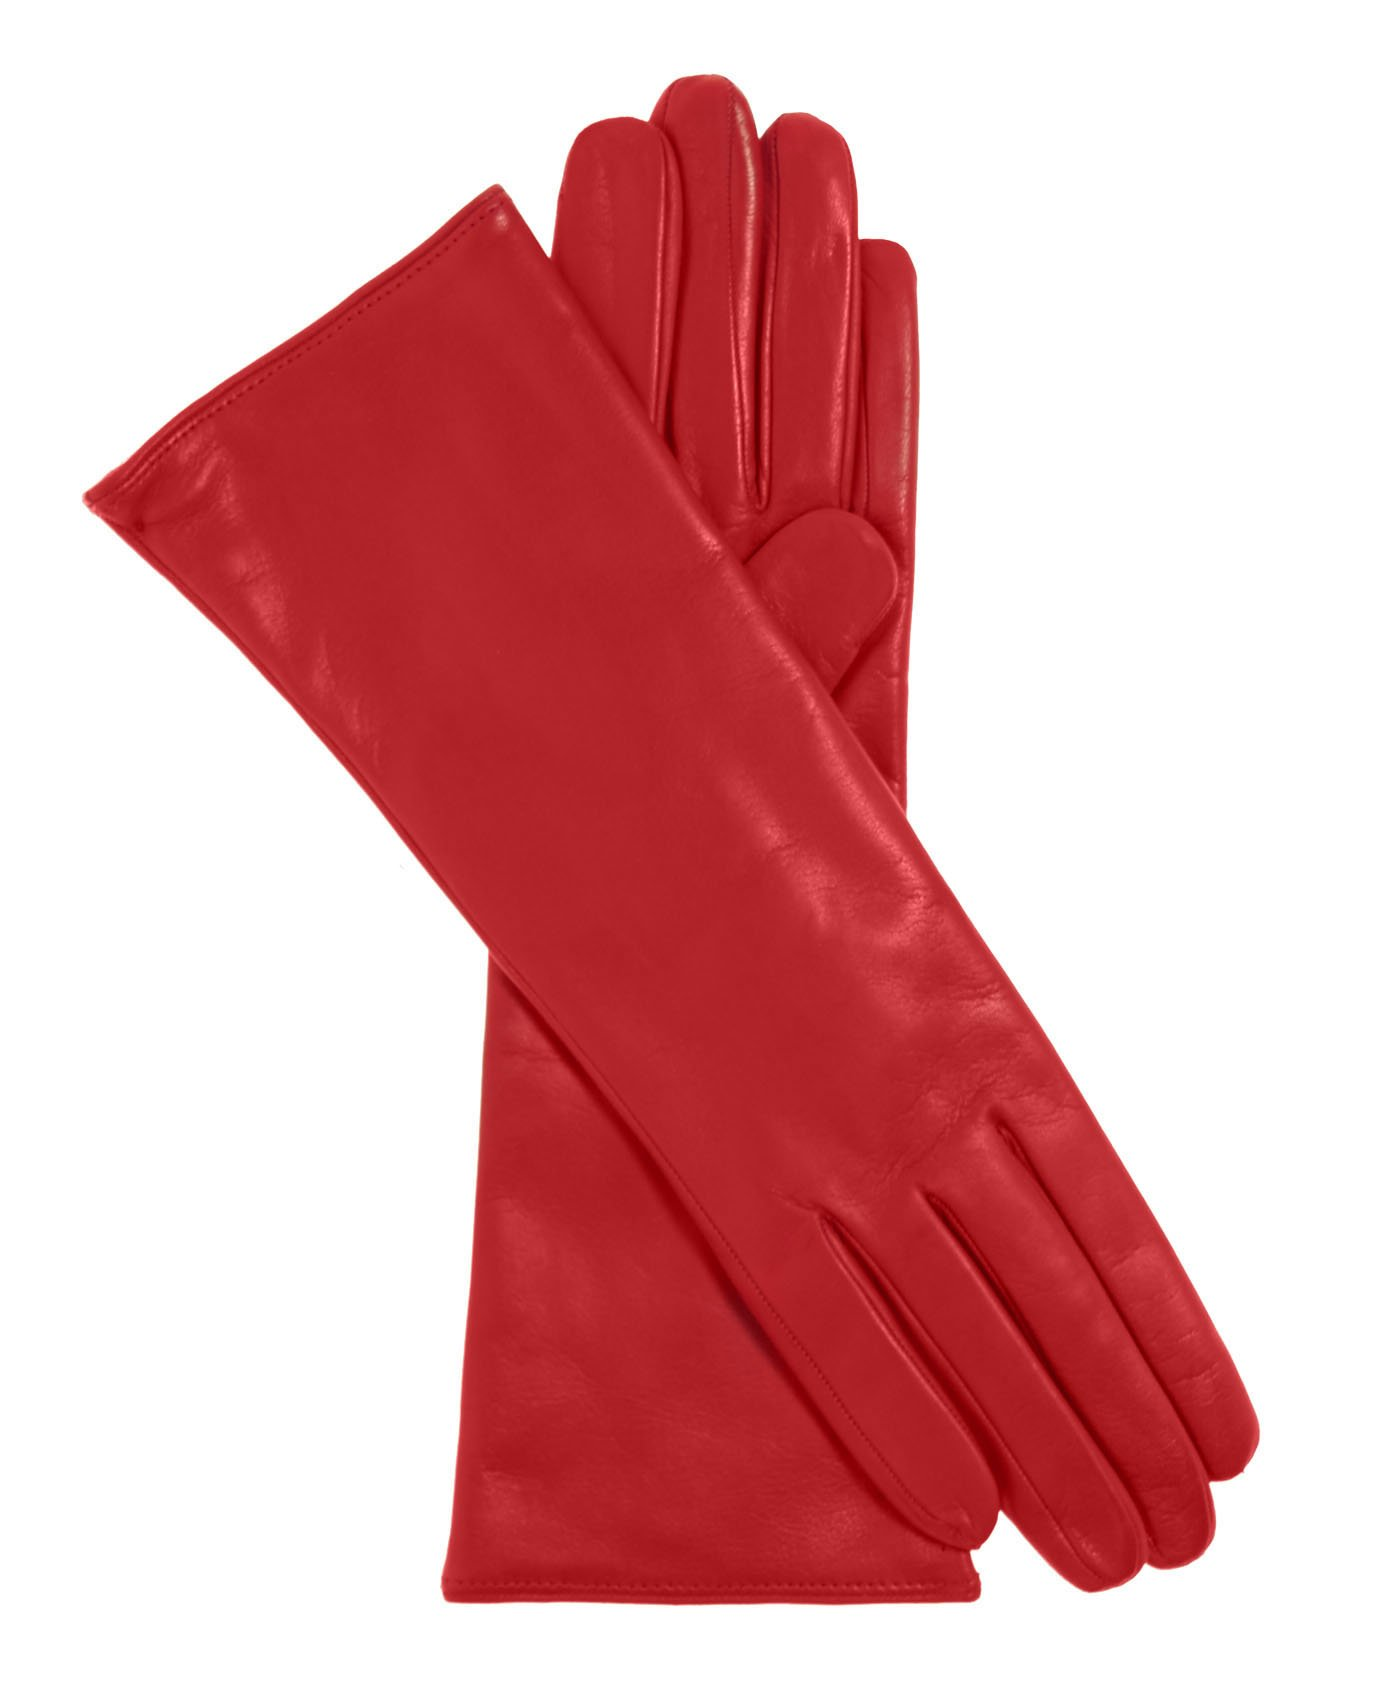 Fratelli Orsini Women's Italian ''4 Button Length'' Cashmere Lined Leather Gloves Size 8 Color Red by Fratelli Orsini